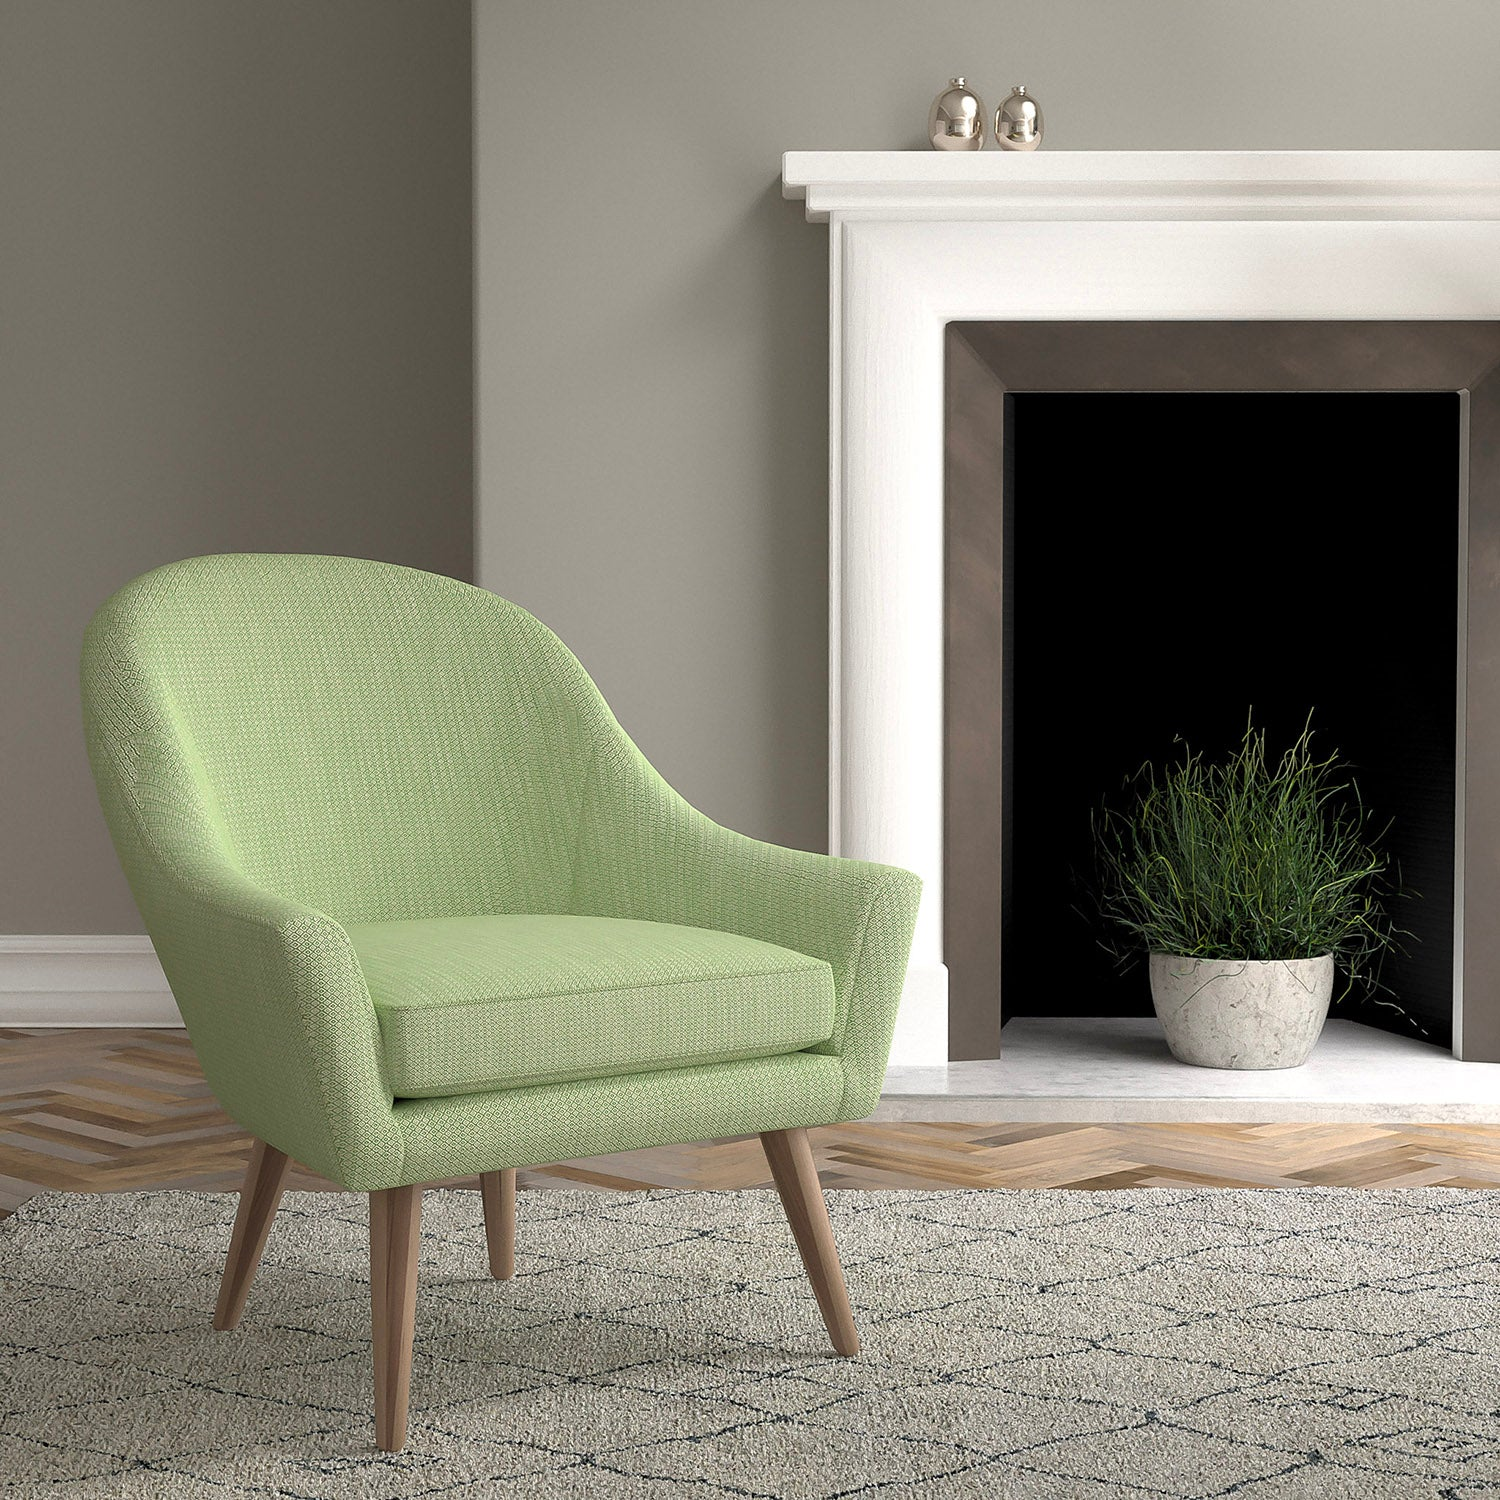 Chair in a green and neutral upholstery fabric with a small diamond design and a stain resistant finish